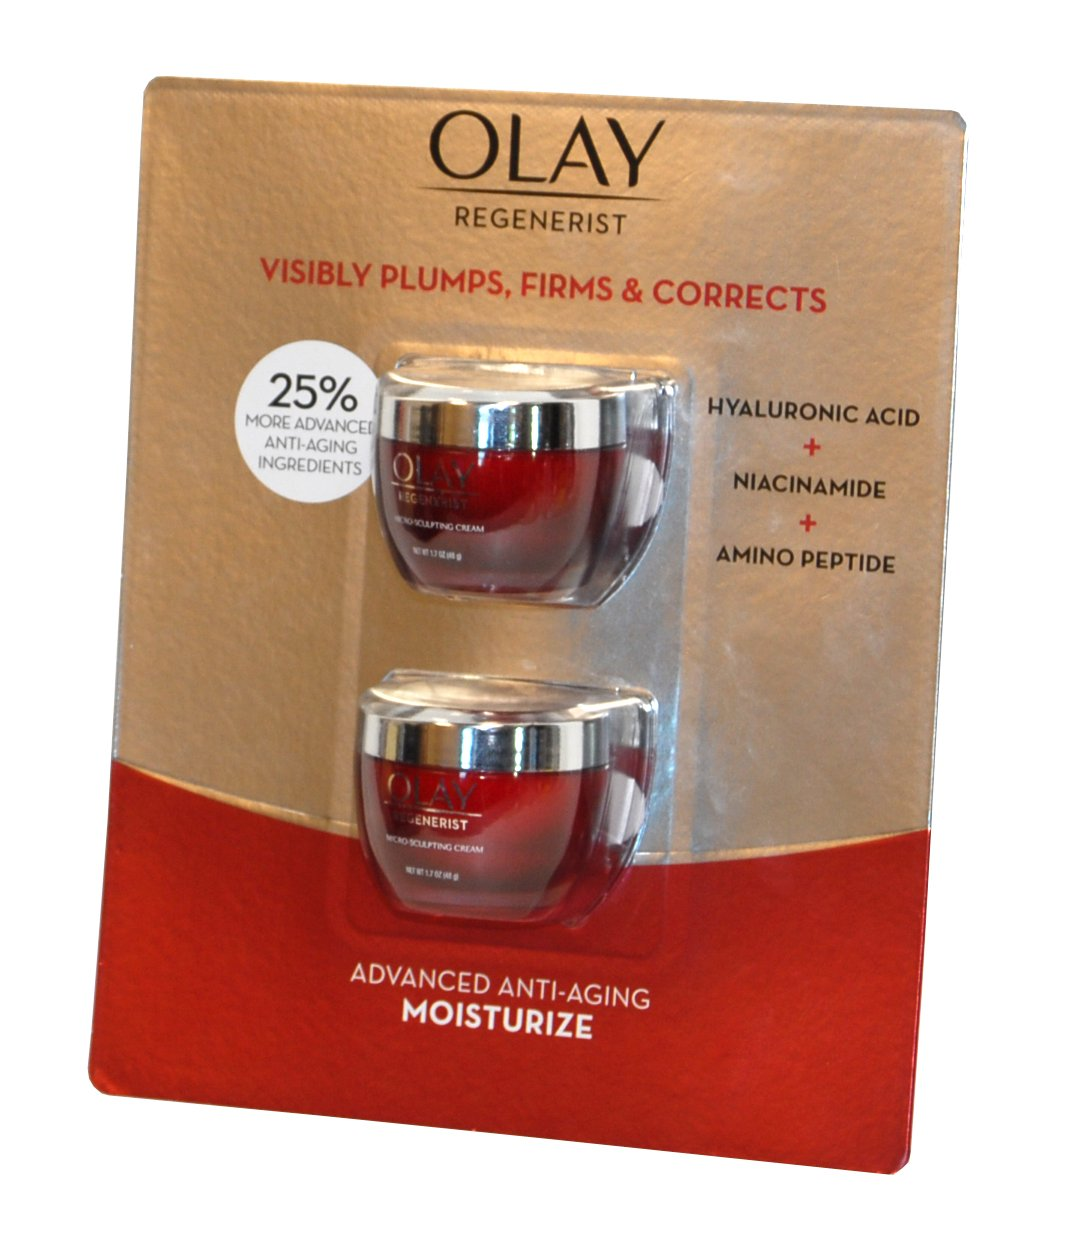 Olay Regenerist Advanced Anti-Aging Moisturizer (2 Count) by Olay